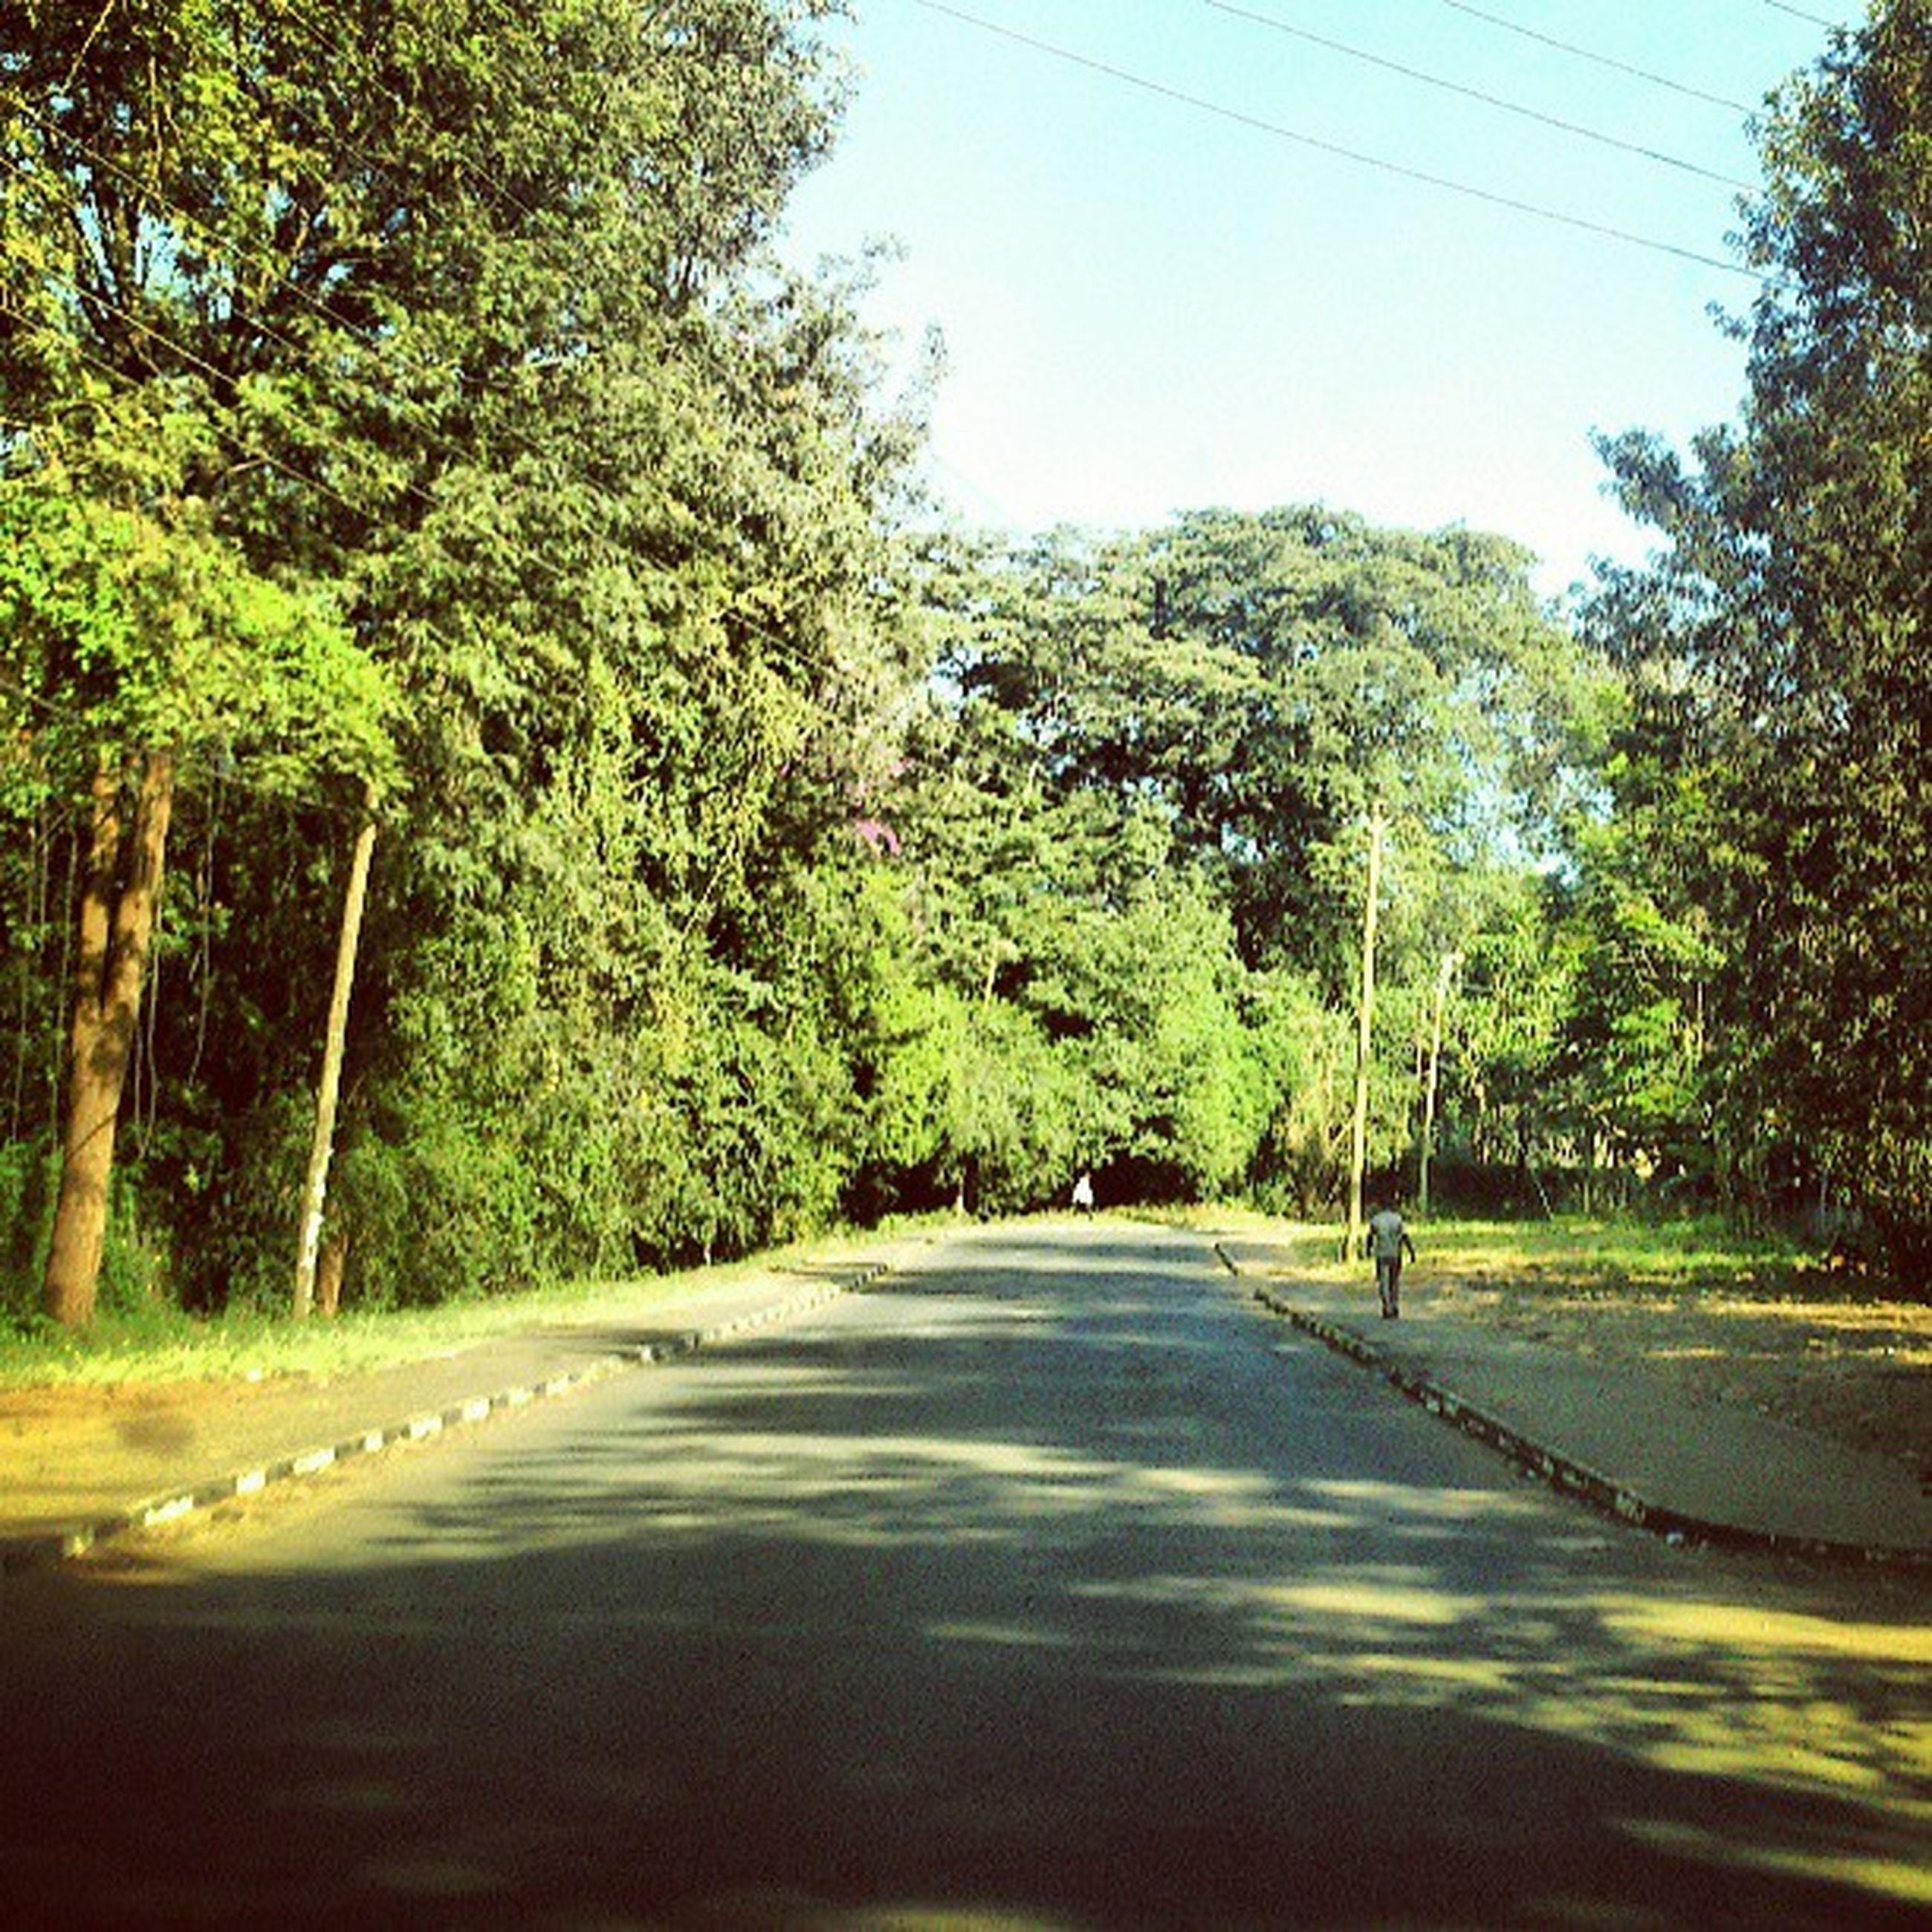 tree, road, clear sky, the way forward, tranquility, transportation, growth, nature, tranquil scene, beauty in nature, scenics, country road, diminishing perspective, sunlight, green color, street, forest, day, water, outdoors